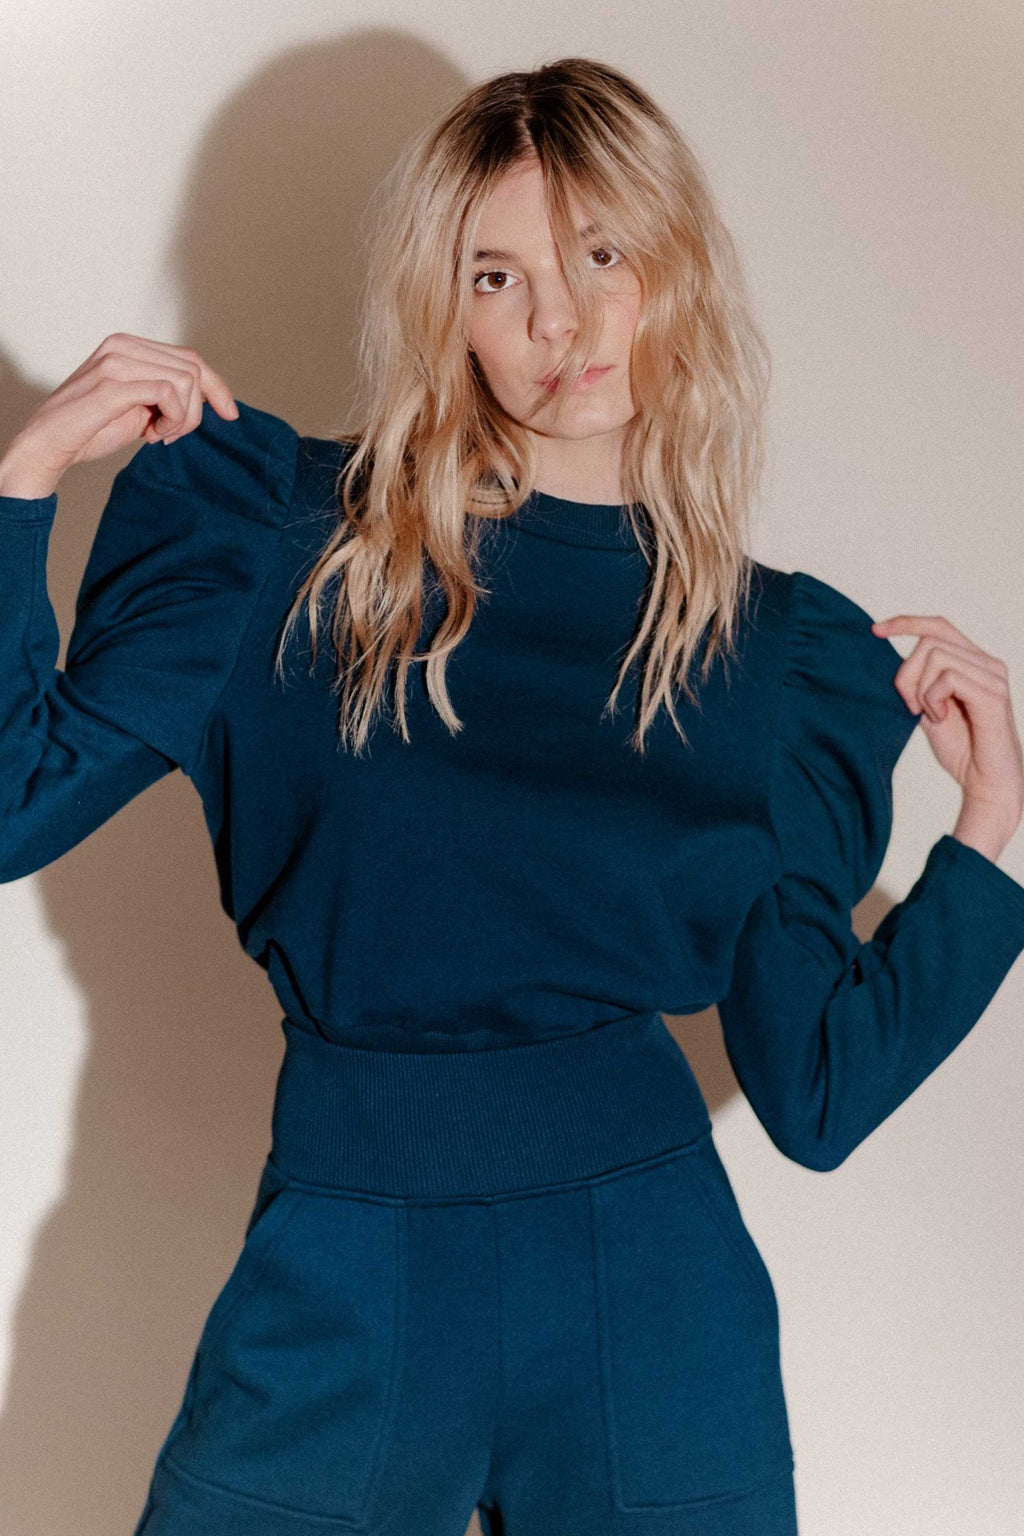 THE JUST ENOUGH PUFF SWEATSHIRT in NAVY